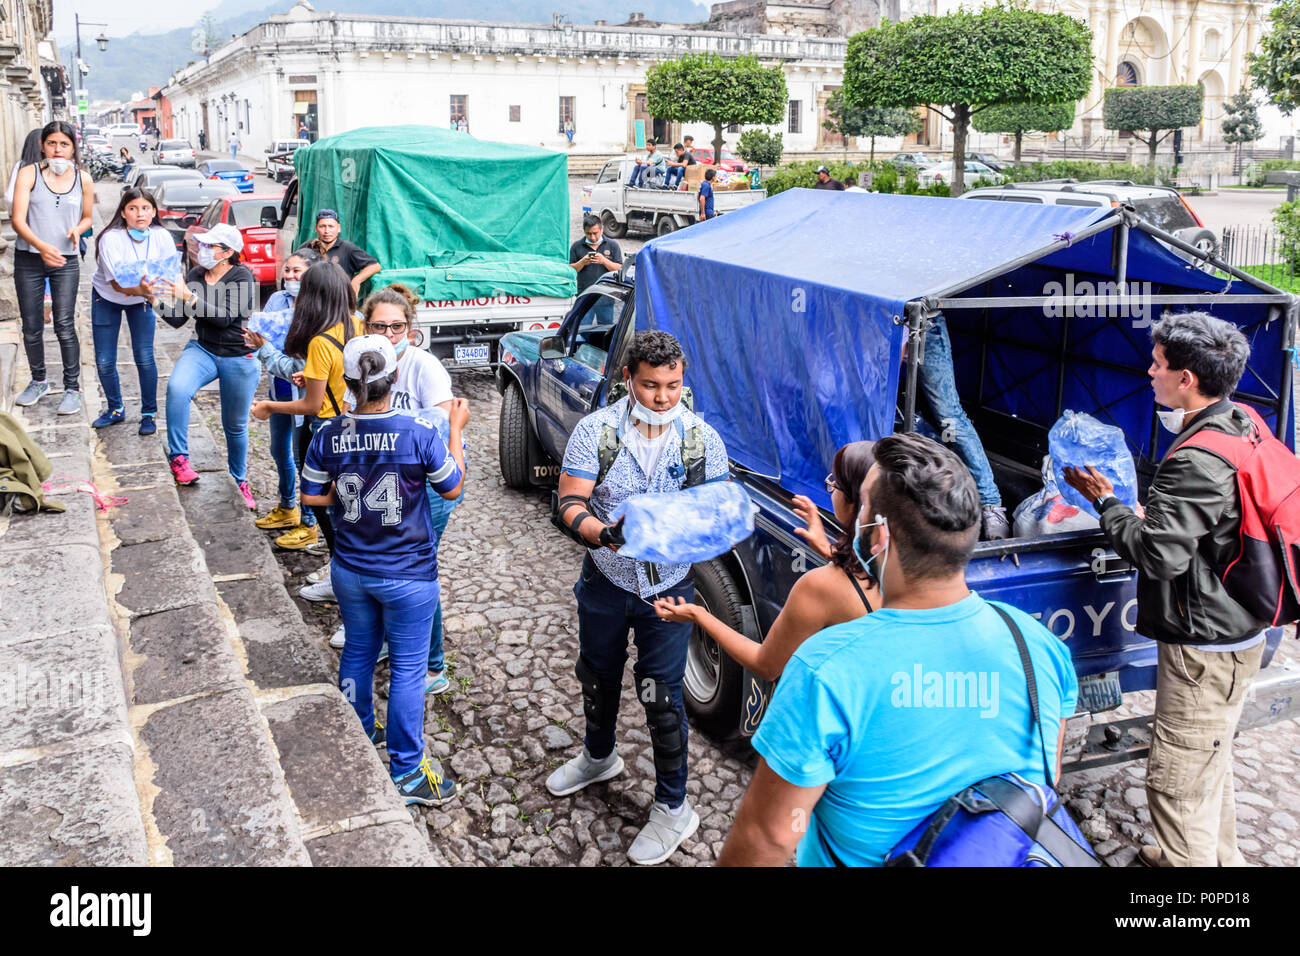 Antigua,, Guatemala -  June 5, 2018:  Volunteers load aid supplies to take to area affected by eruption of Fuego volcano on June 3 Stock Photo